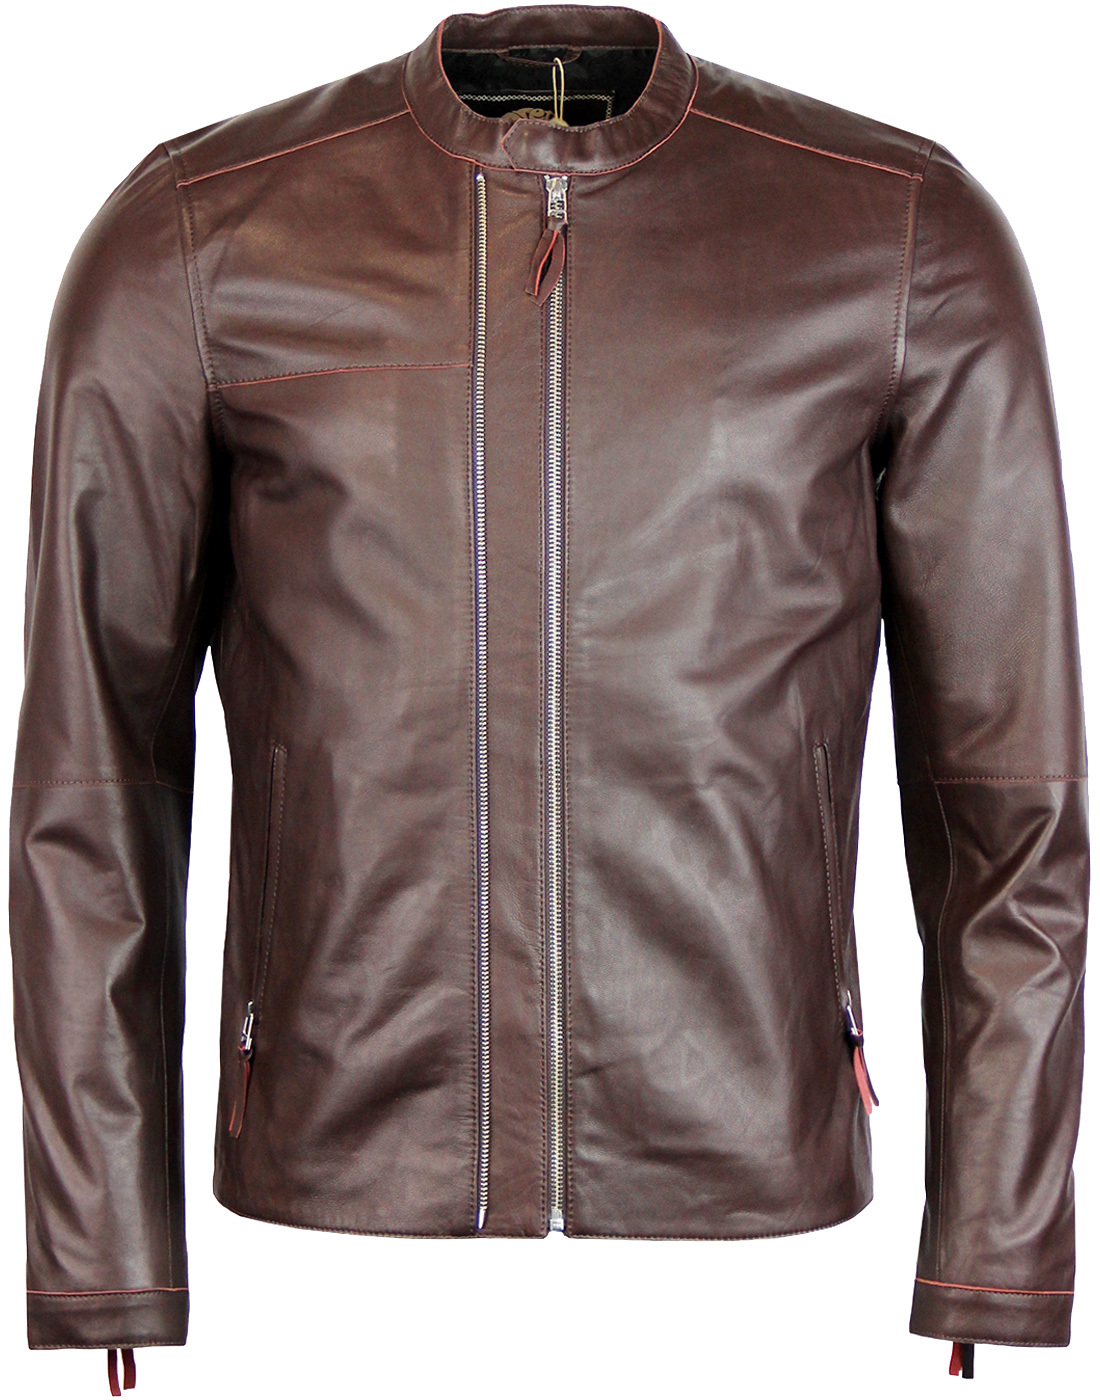 Pretty Green 'Cardale' belted leather biker style jacket. Crafted from % black leather, there isn't a leather biker jacket much better than this! A Mod essential, a fantastic Retro take on a classic biker jacket.